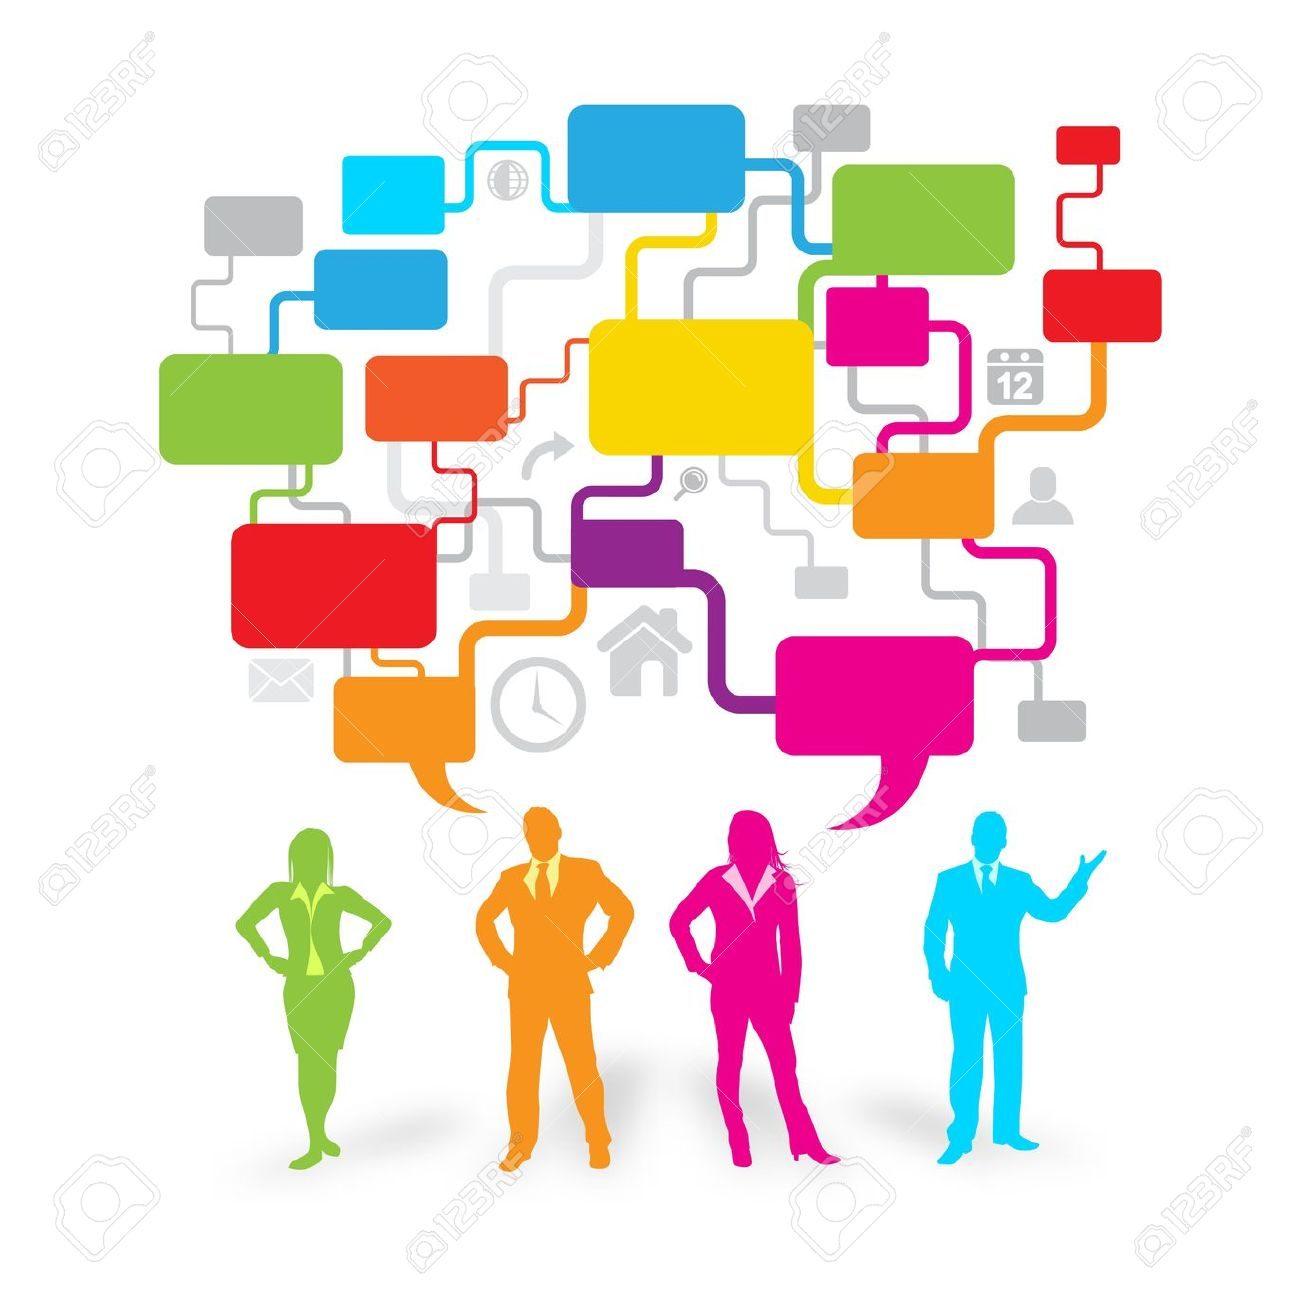 communication clipart business communication